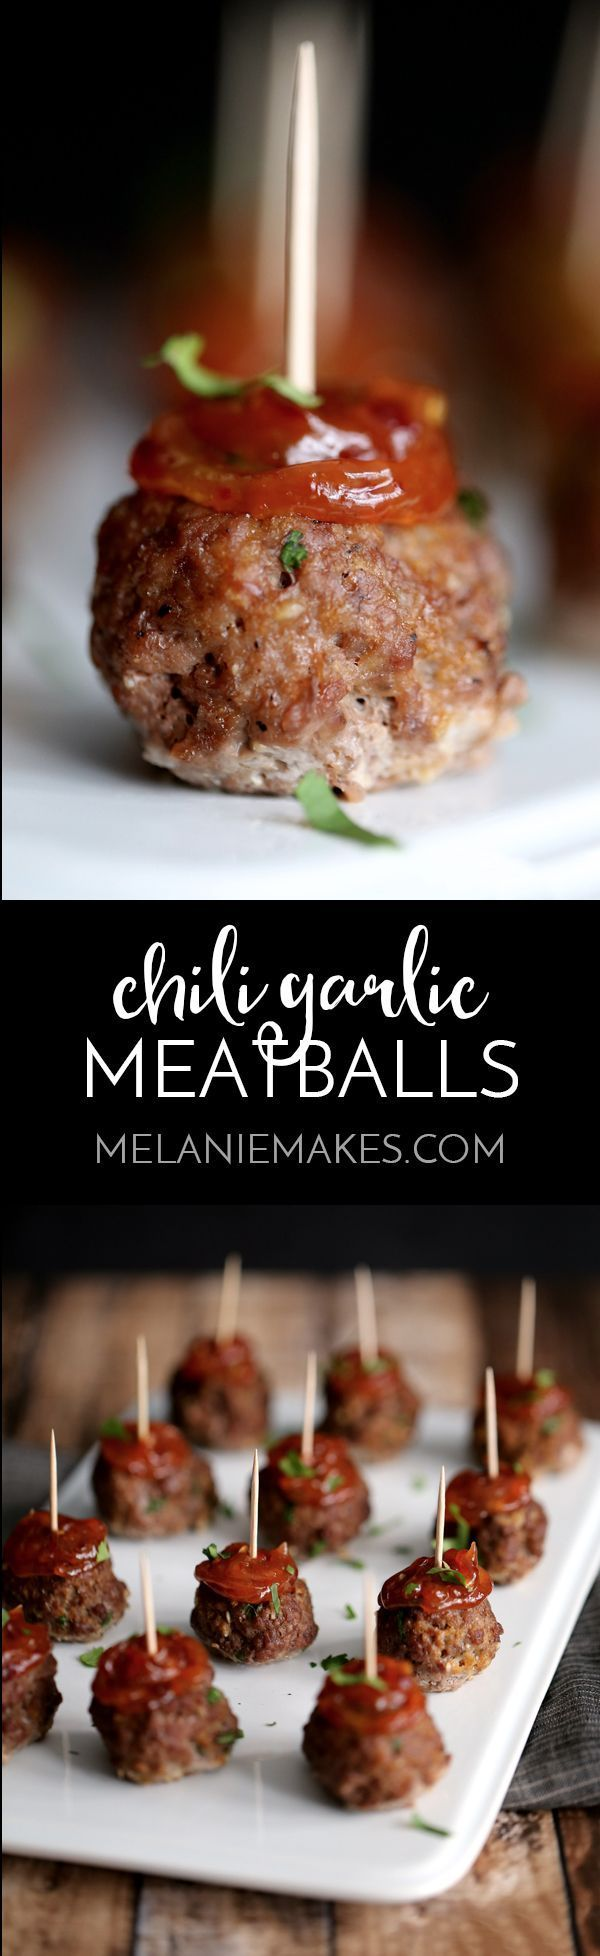 These Chili Garlic Meatballs are the perfect appetizer for game day, a holiday or any day of the week! Easy oven baked meatballs are spiked with garlic, ginger and cilantro before being adorned with an amazingly flavorful chili garlic sauce.